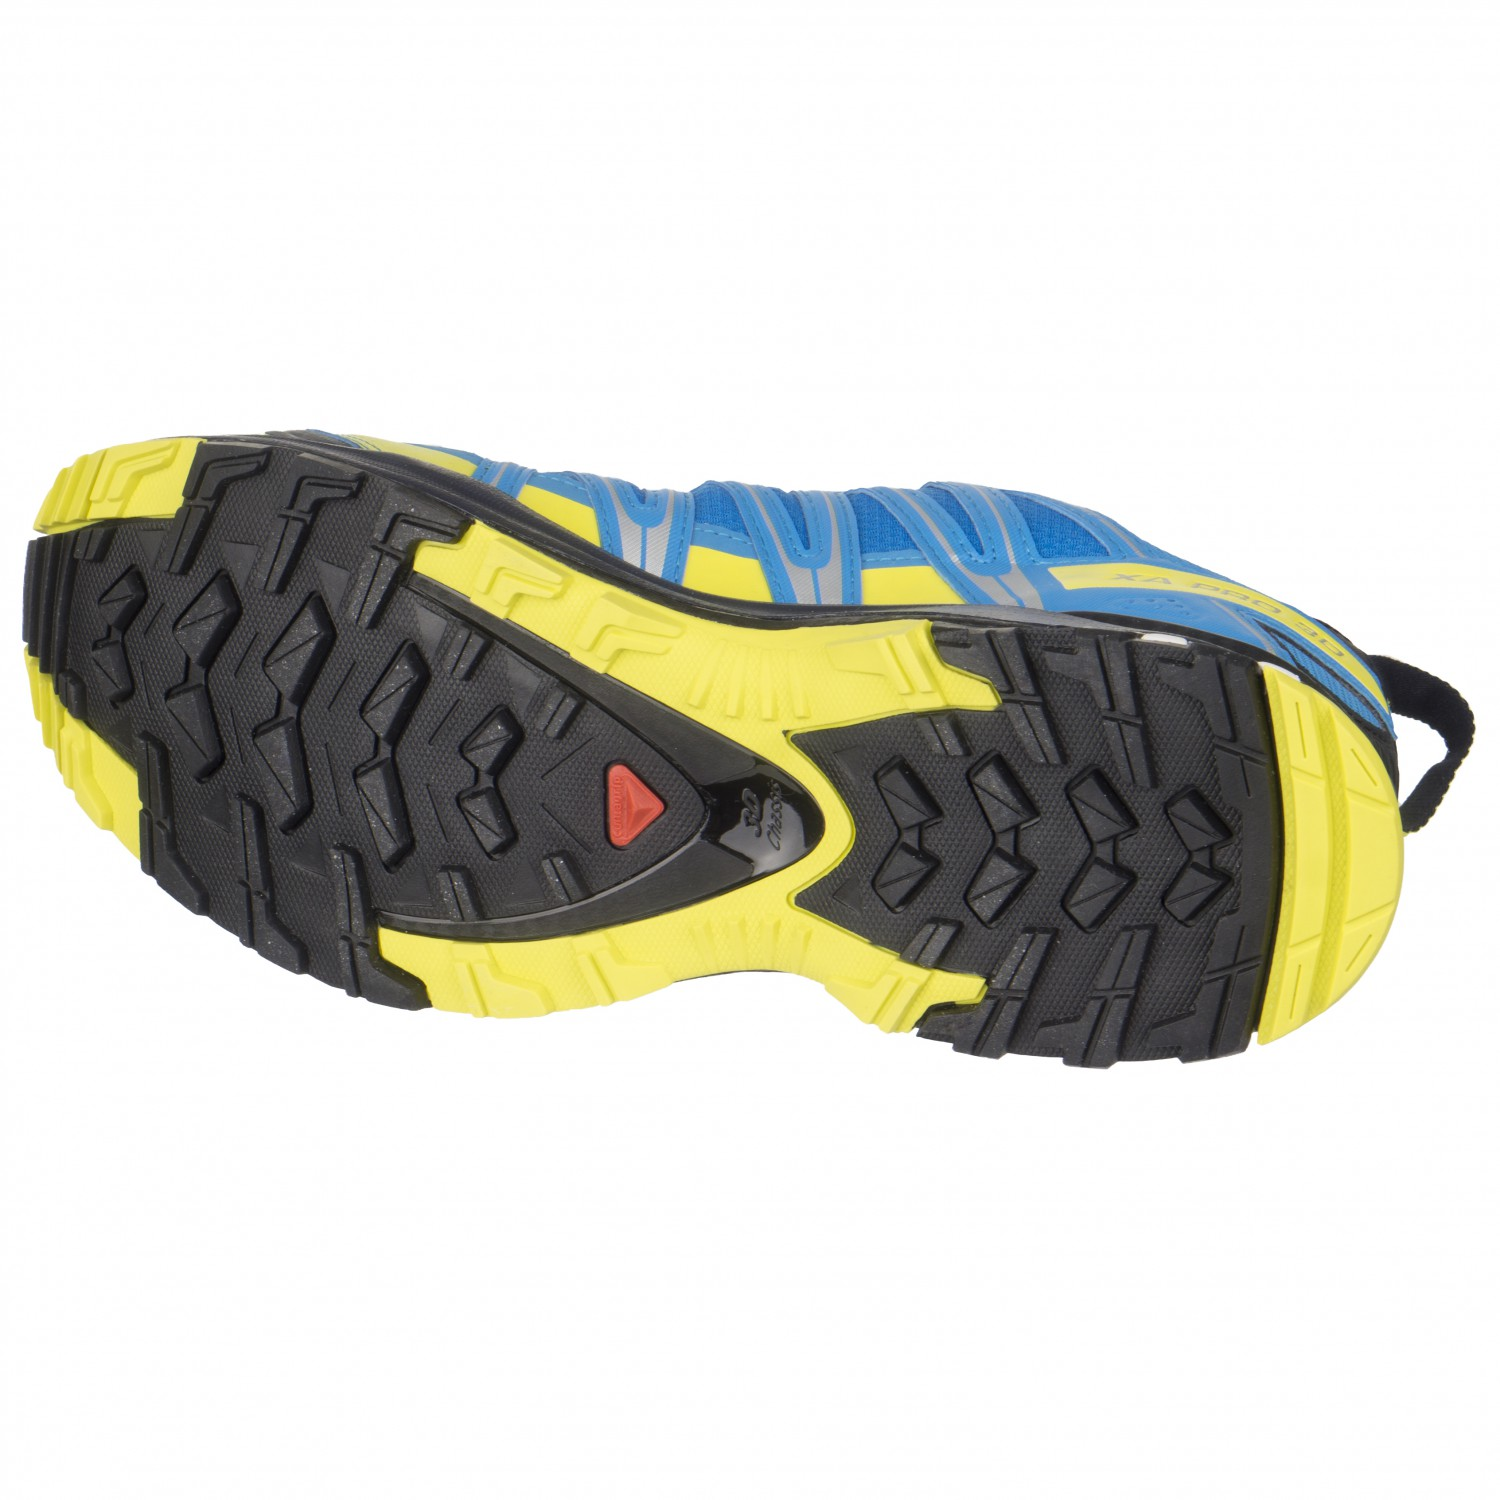 reputable site f335d 89552 ... Salomon - XA Pro 3D GTX - Multisport shoes ...